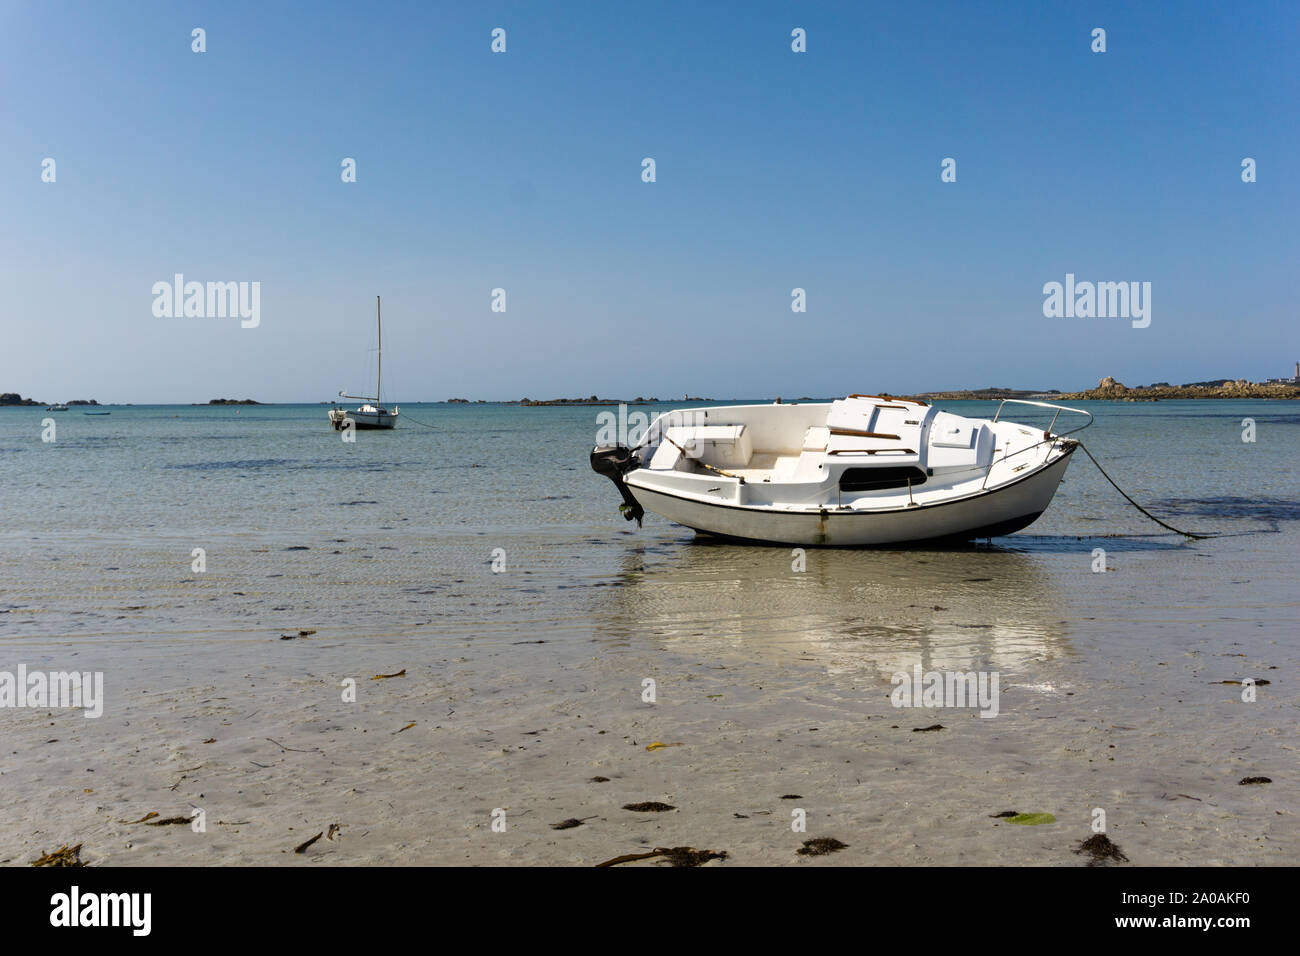 Shallow Water Boats >> Horizontal View Of Boats Stranded In Shallow Water And Sand